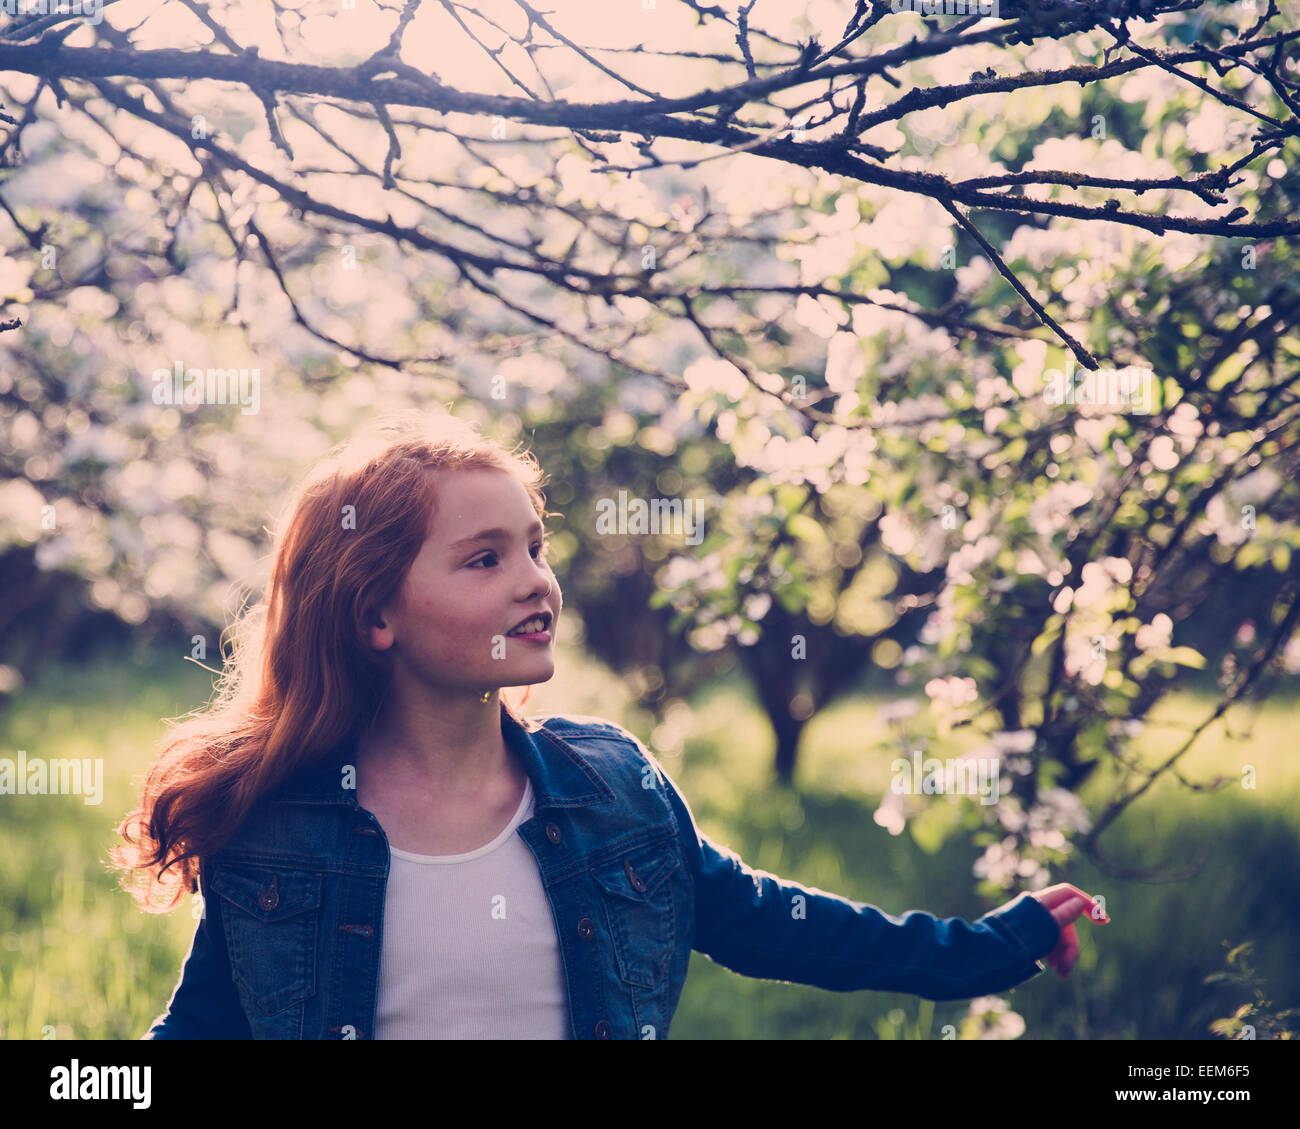 Girl walking through orchard in blossom - Stock Image